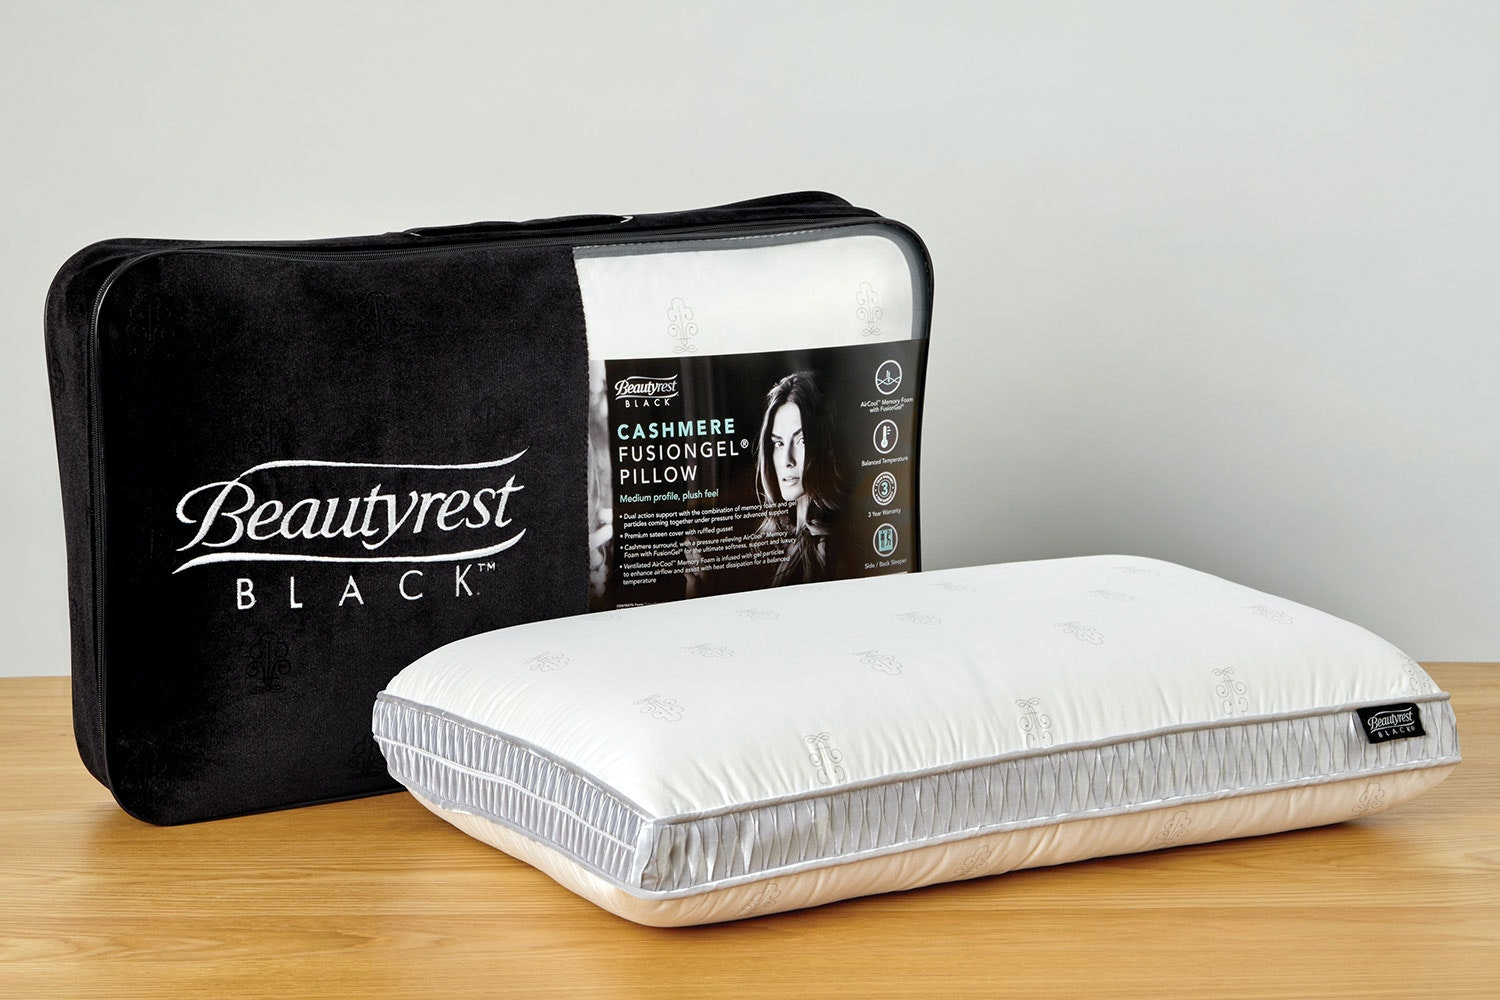 Beautyrest Black Pillow